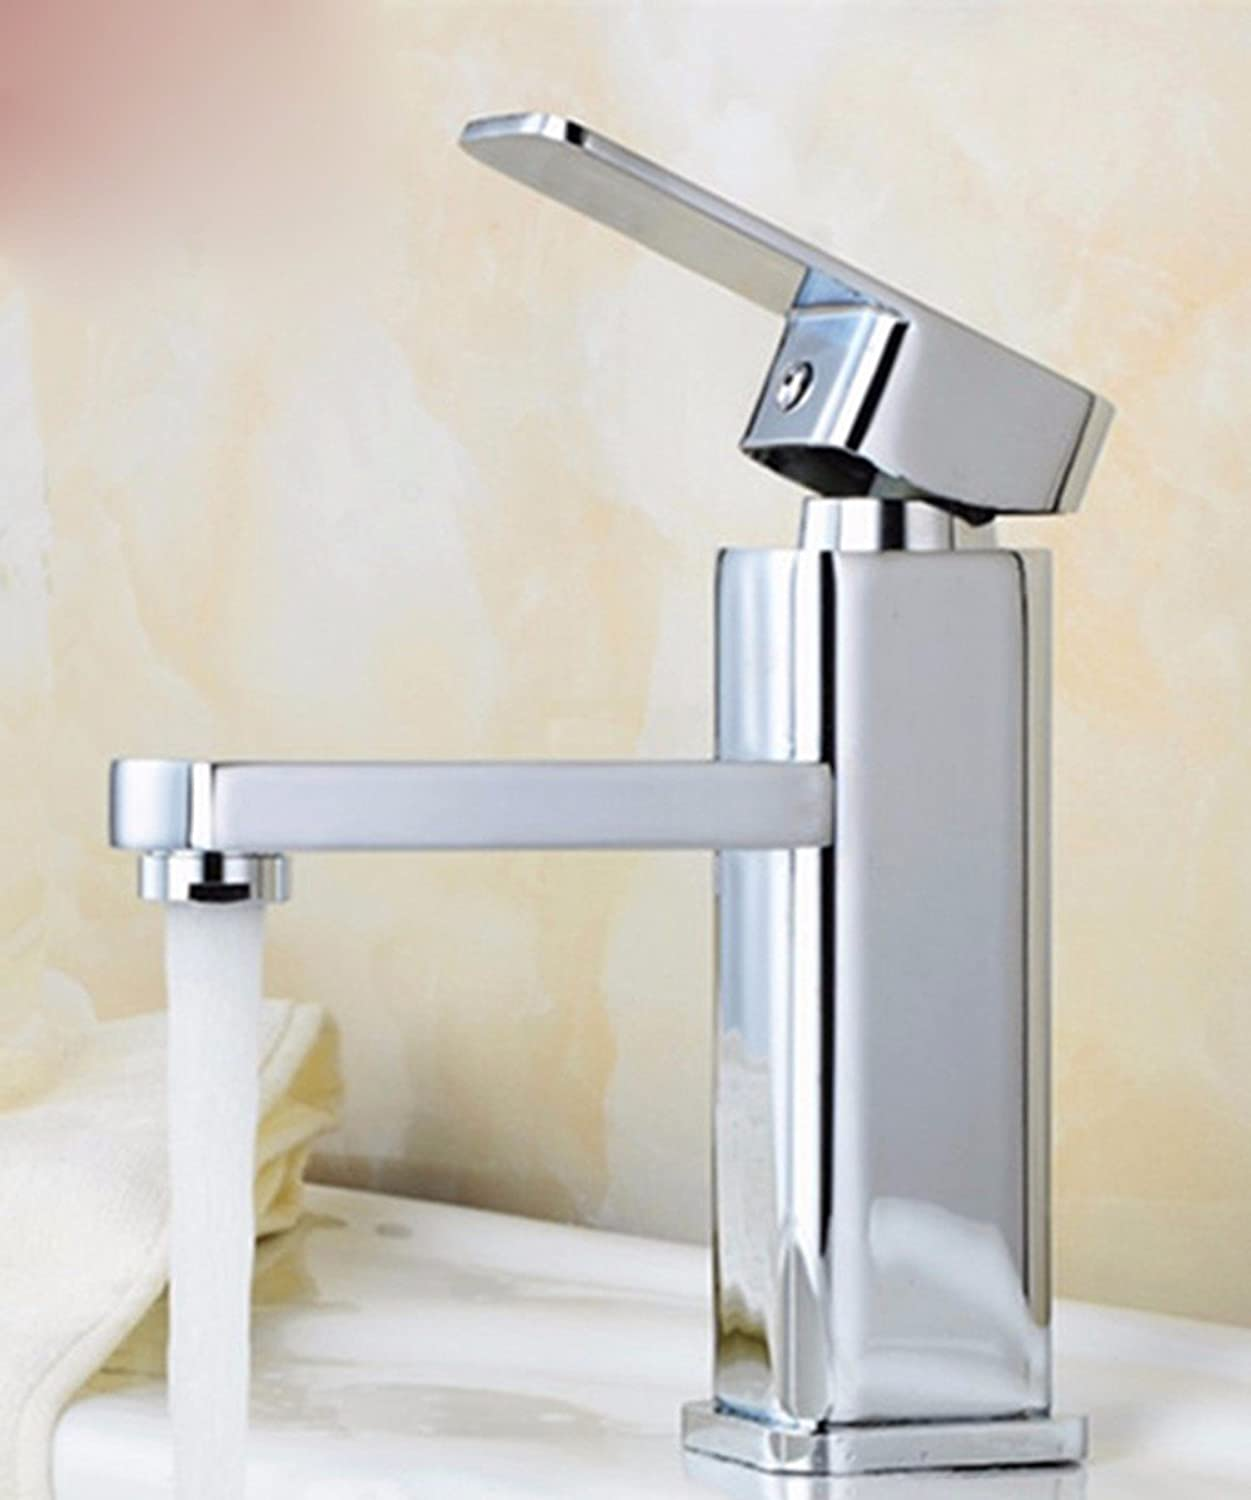 Hlluya Professional Sink Mixer Tap Kitchen Faucet The copper, stainless steel, hot and cold water bath faucet,F